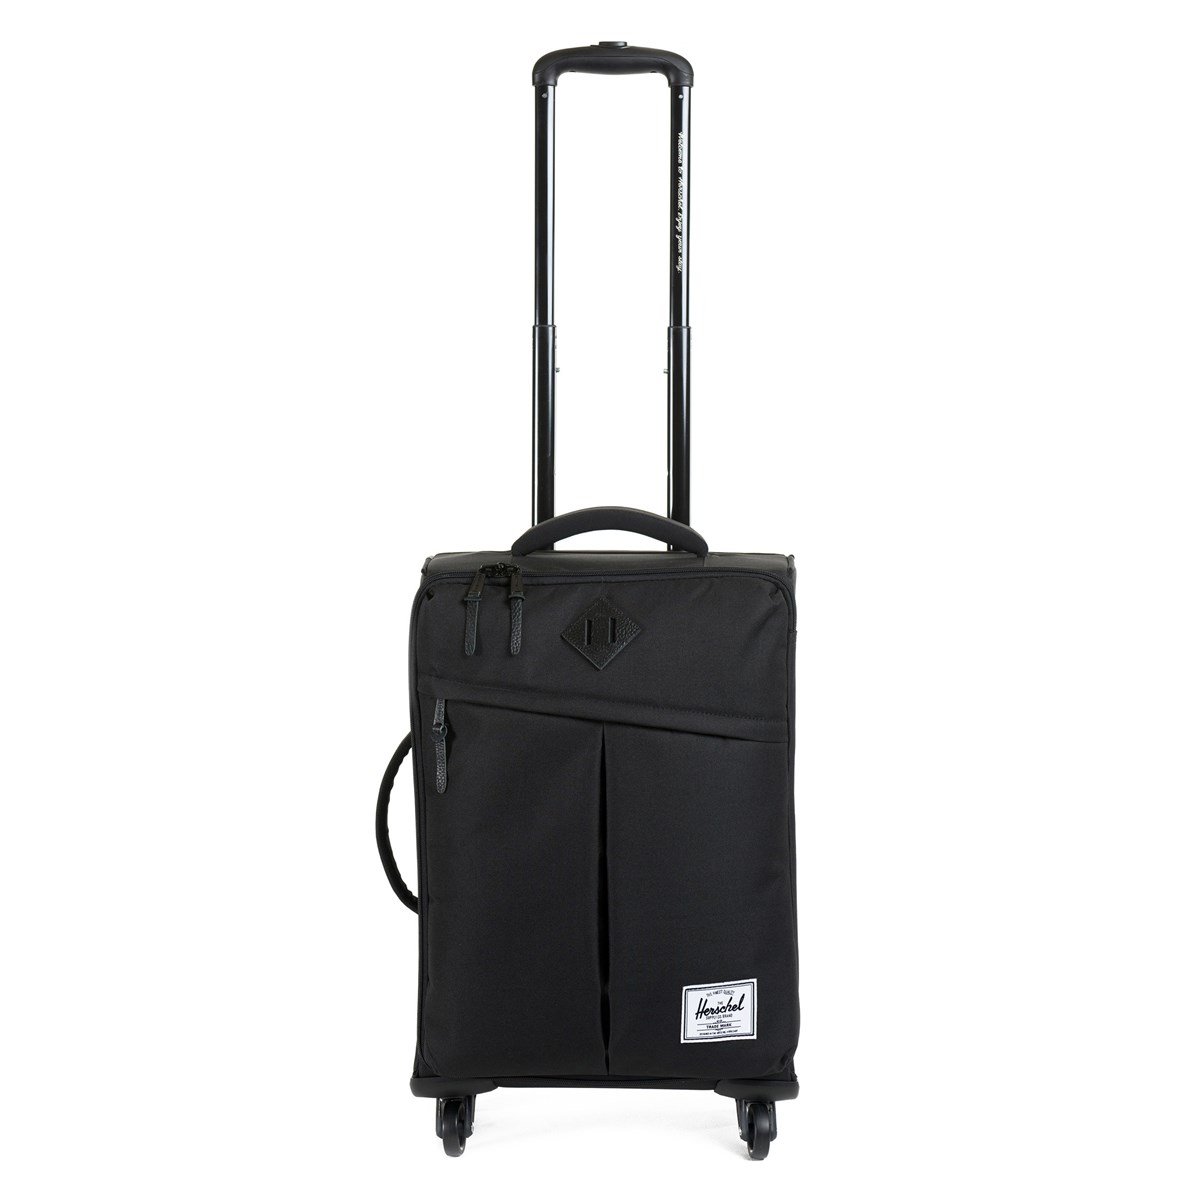 Highland Dark Black Carry-On Luggage